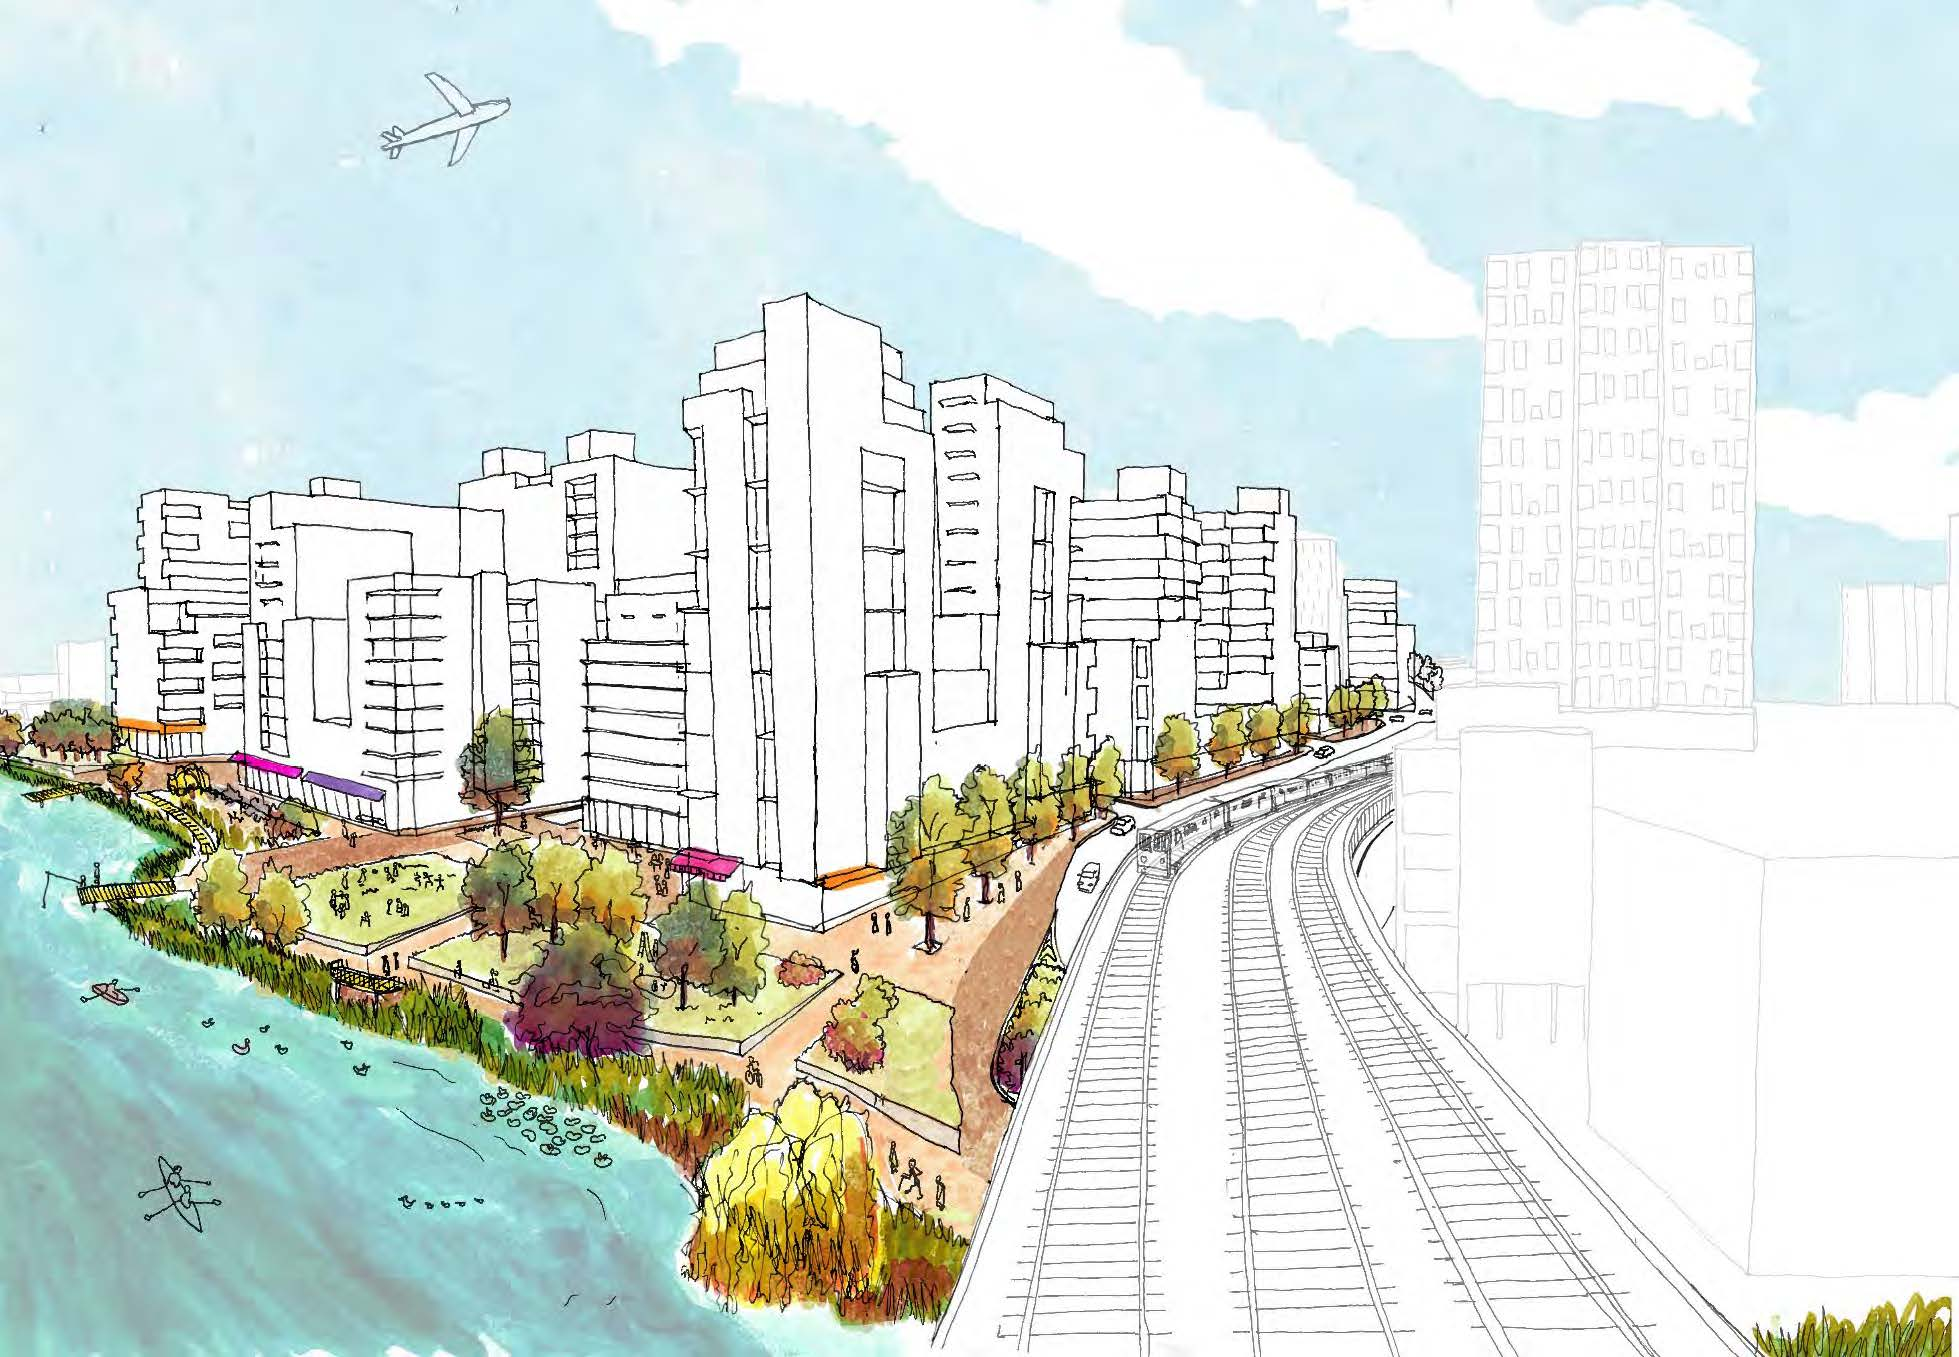 A rendering of the city's vision for Flushing West from the 7 train tracks. image via Department of City Planning